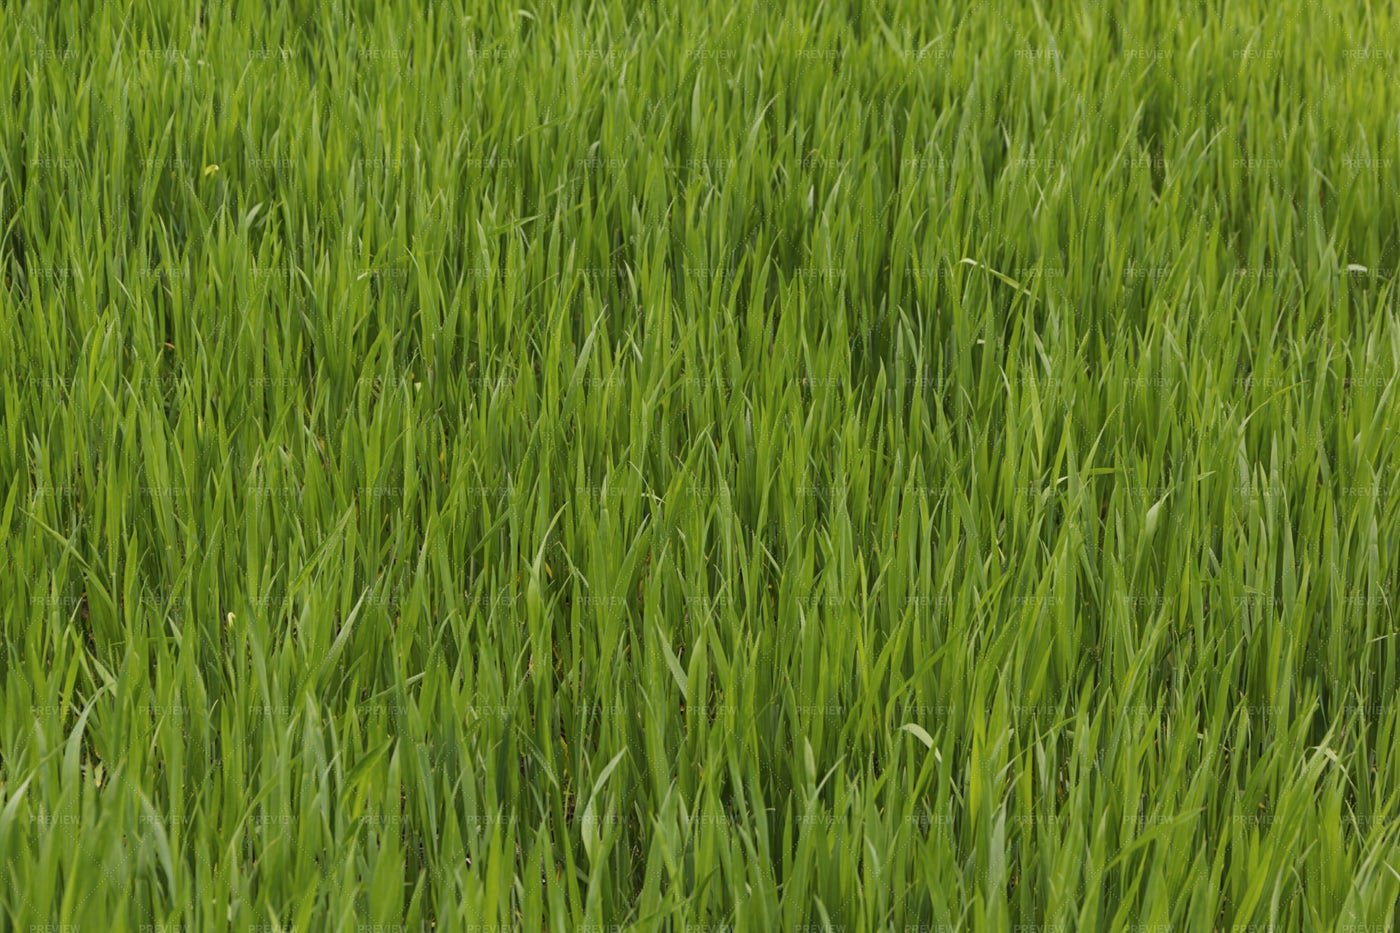 Green Gras: Stock Photos